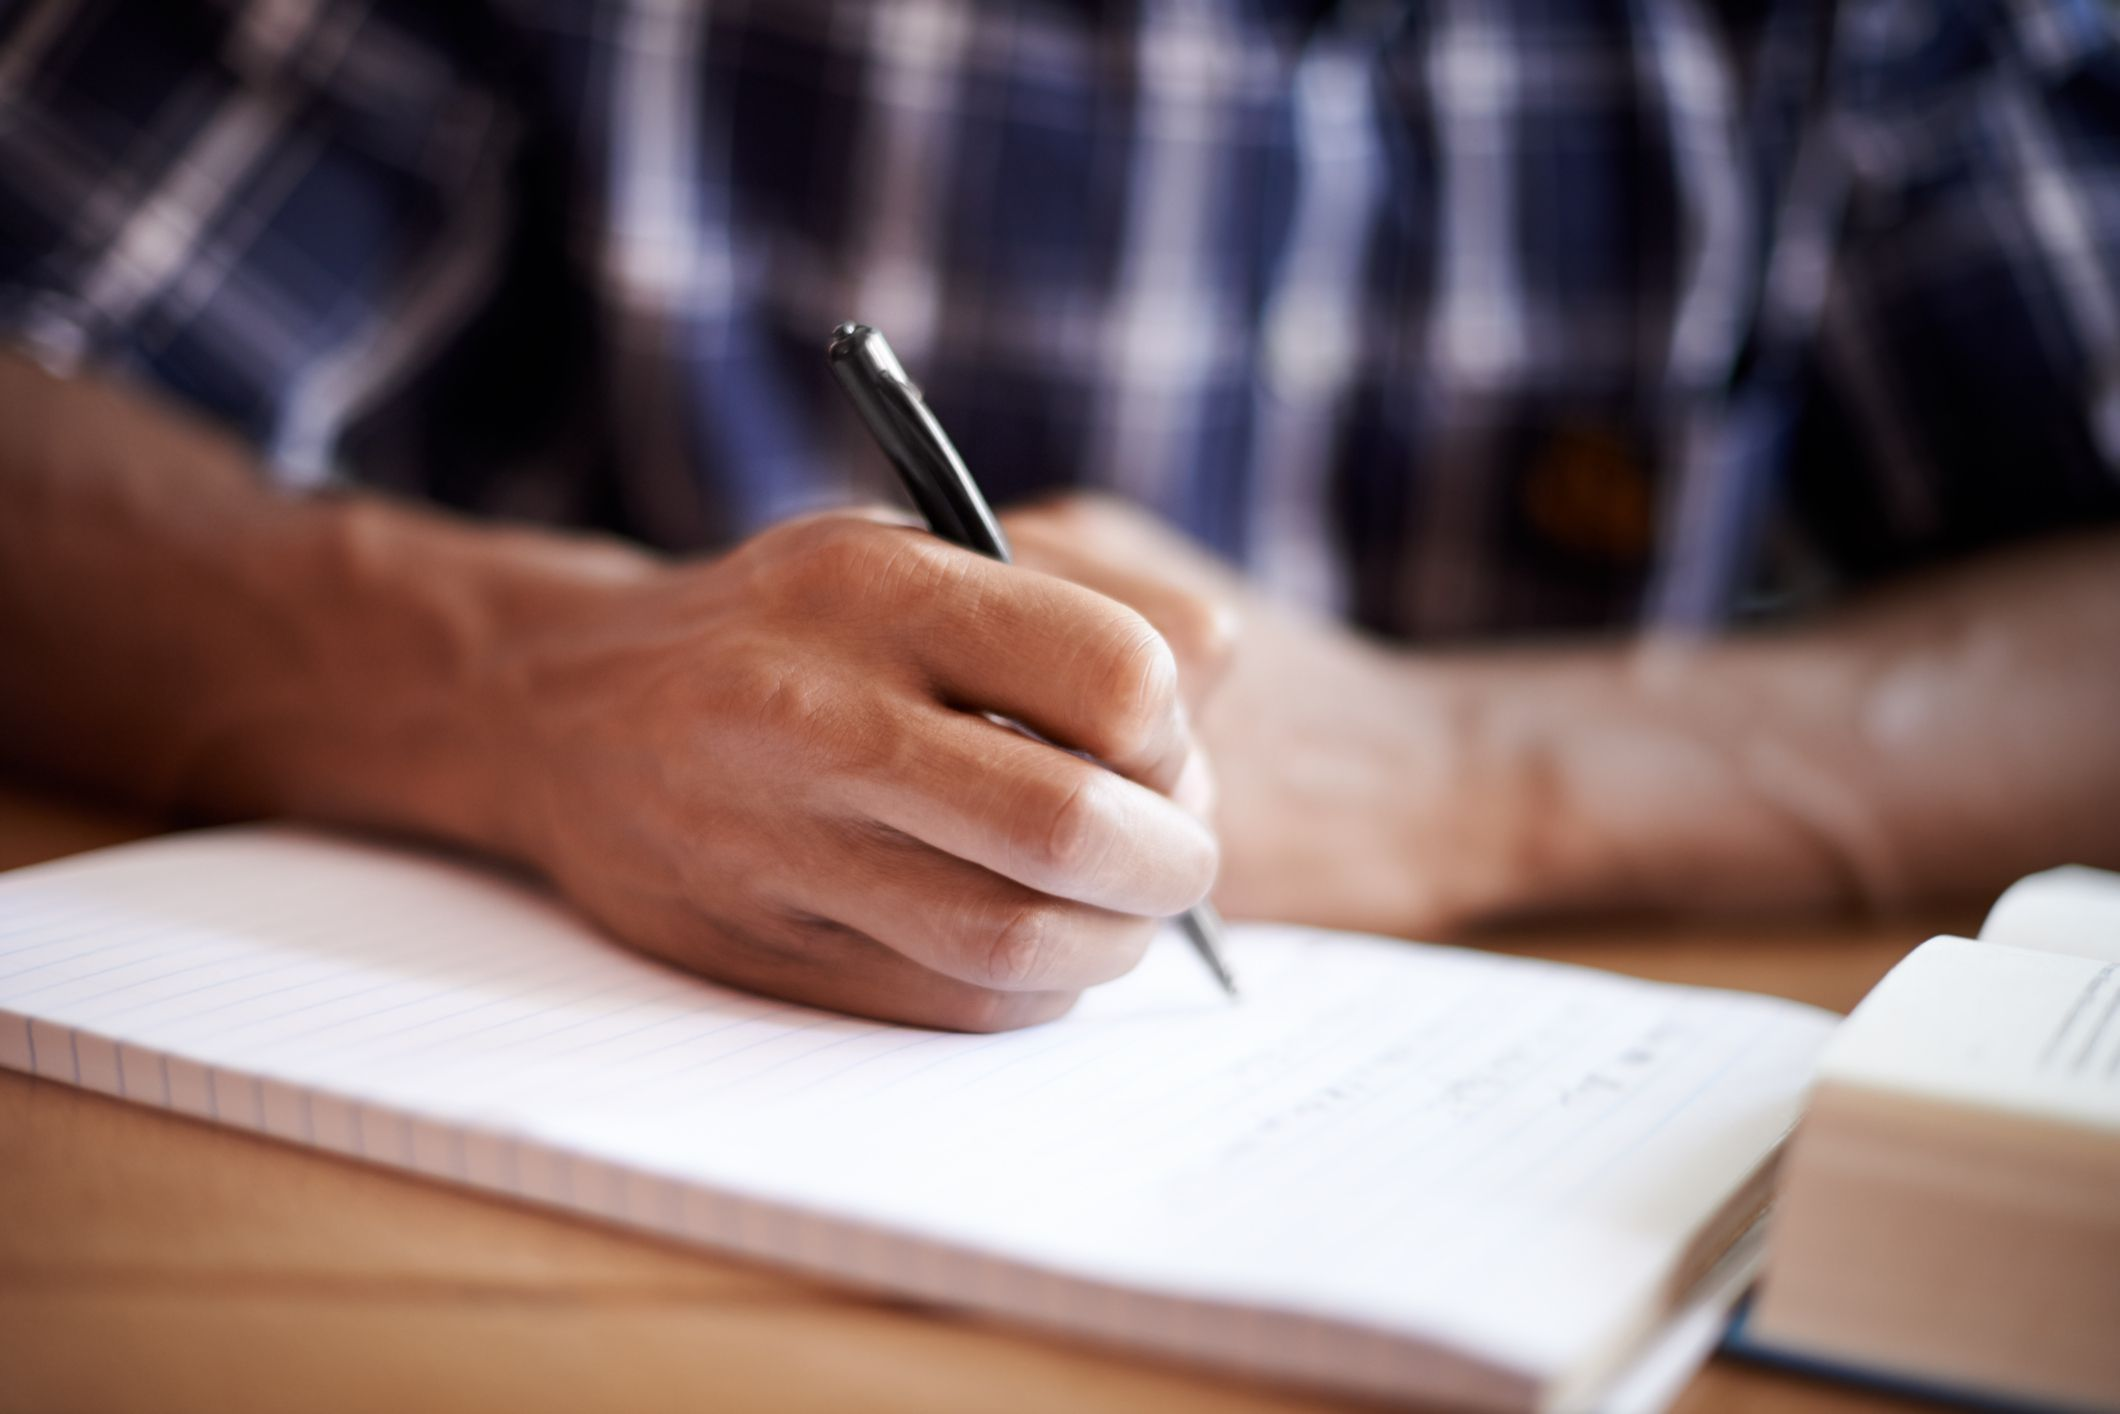 A man studying for a test